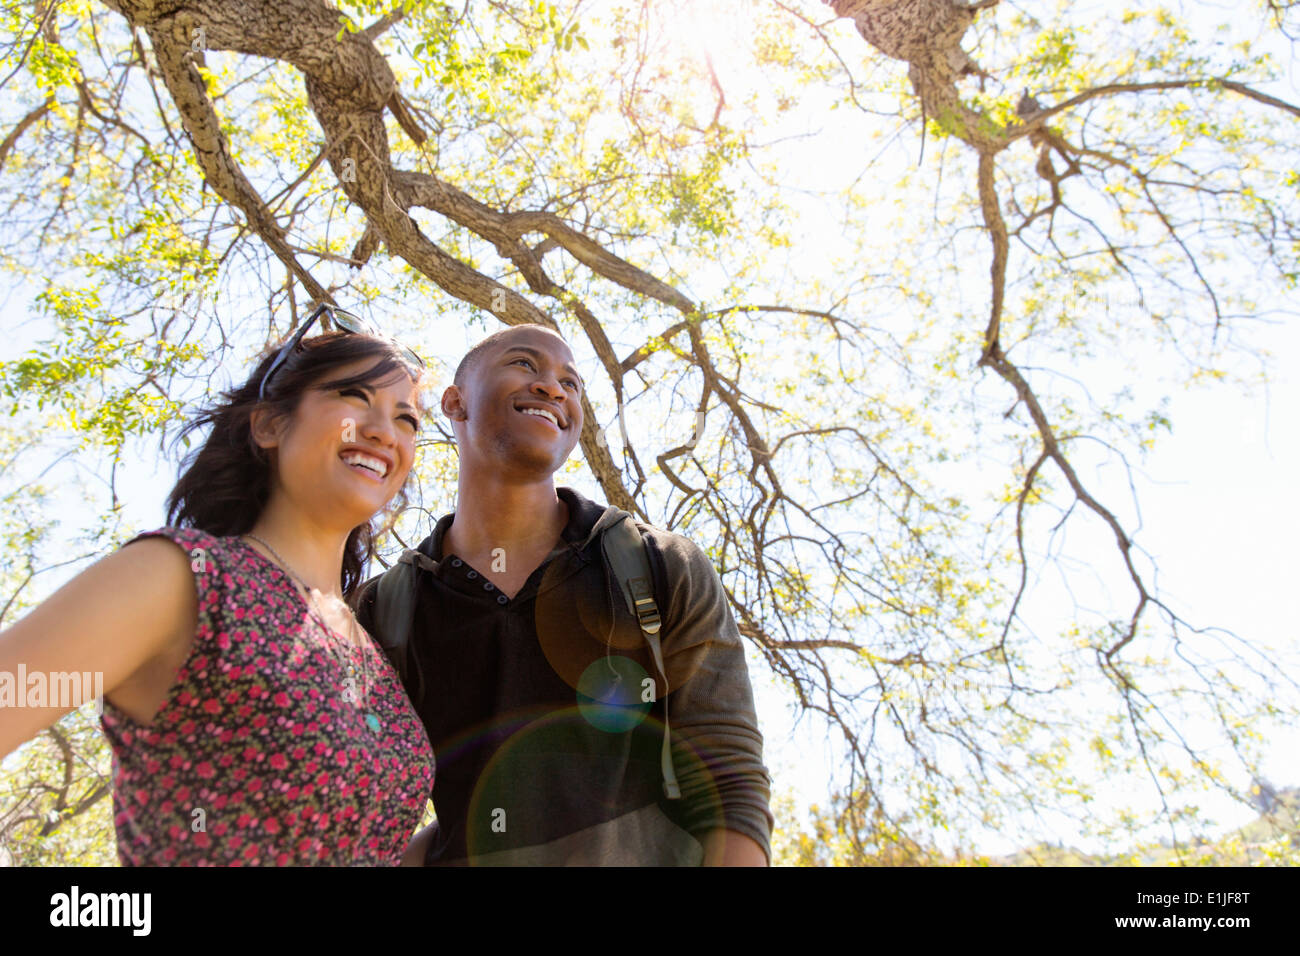 Young romantic couple in park - Stock Image